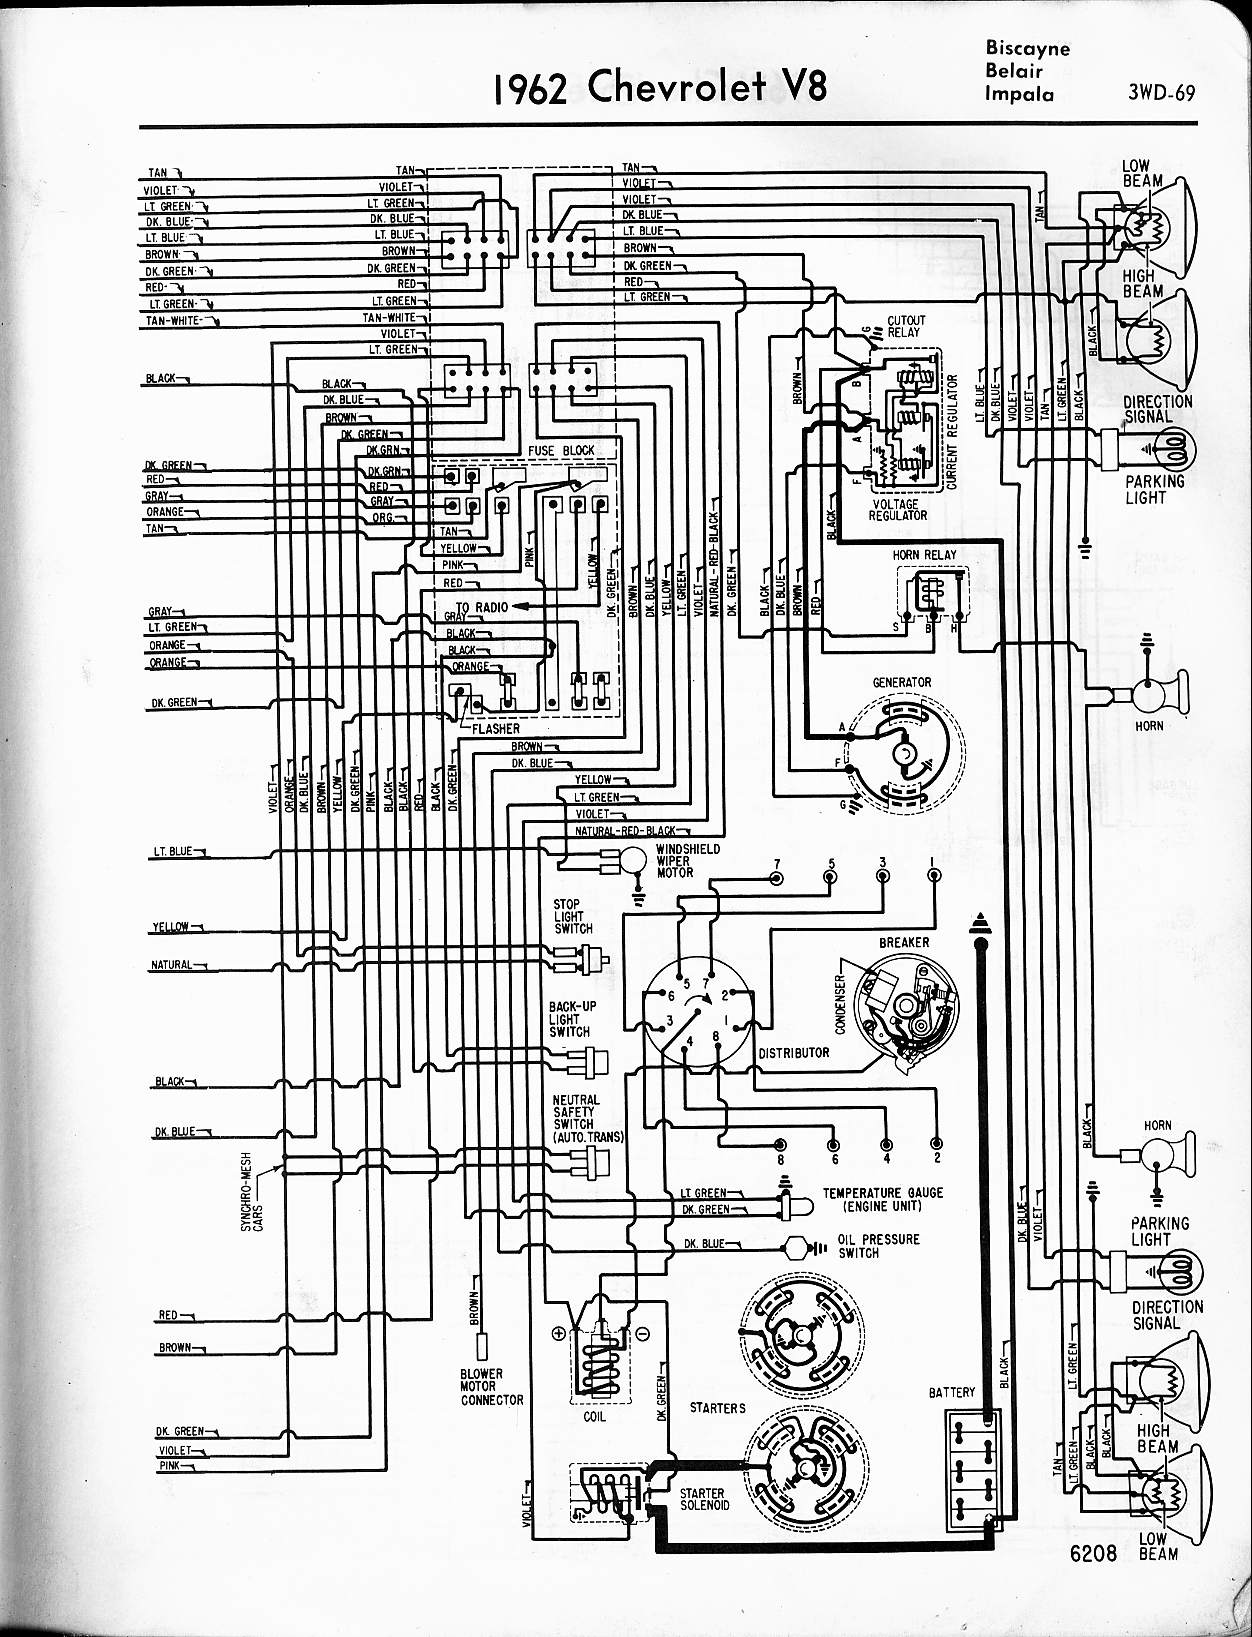 69 Impala Interior Wiring Diagram Archive Of Automotive Amc Javelin Tach Diagrams 57 65 Chevy Rh Oldcarmanualproject Com